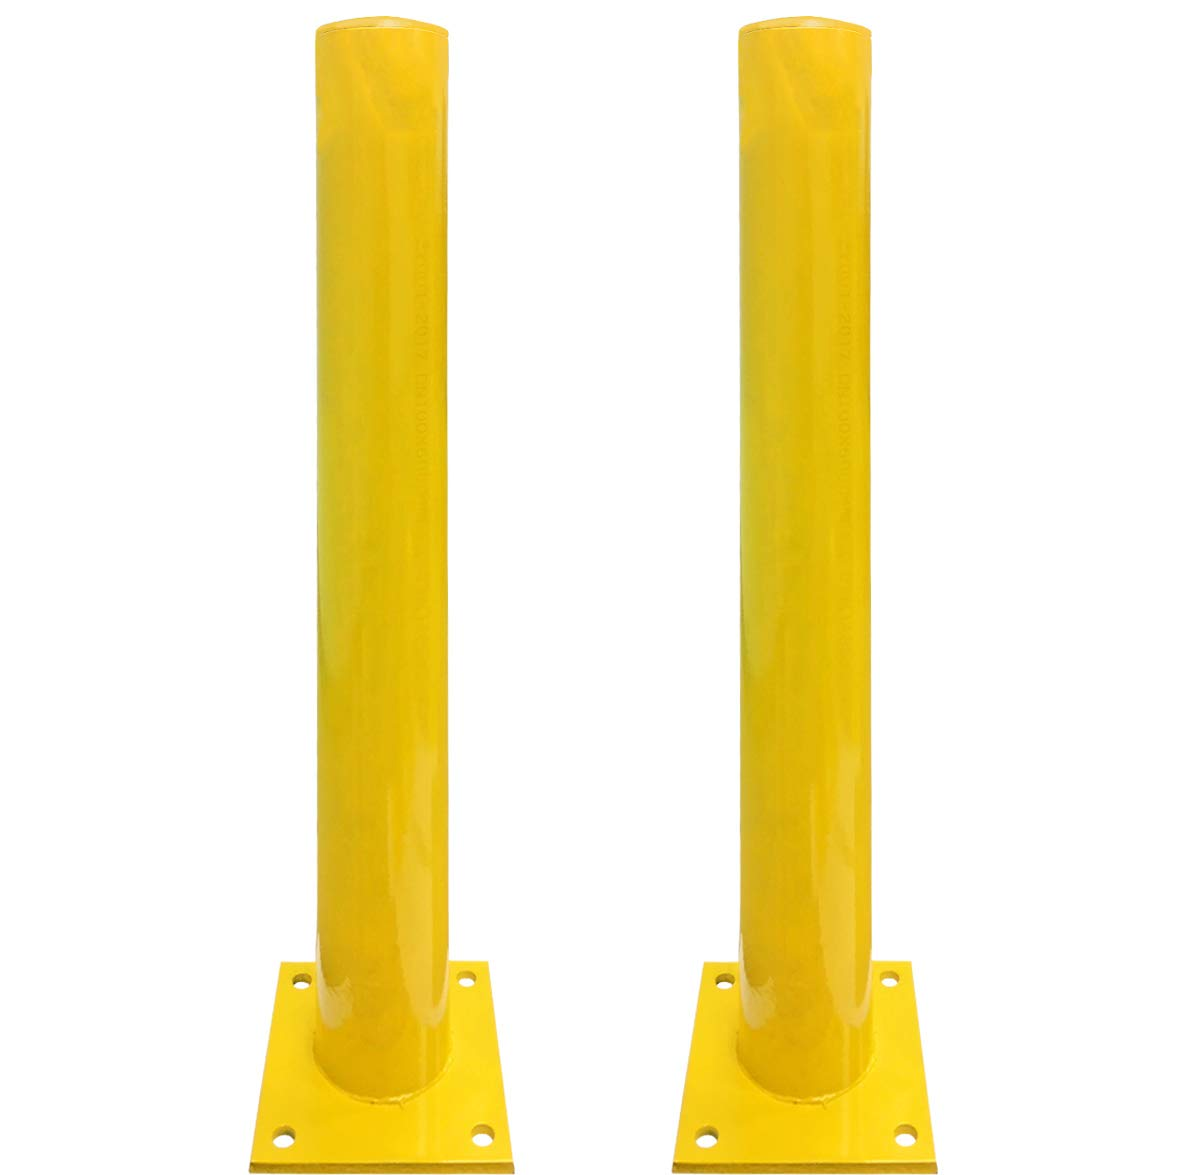 Electriduct 3 Feet Steel Pipe Safety Bollard Post Yellow - Parking Lot Traffic Barrier (36'' Height - 4.5'' OD) - Pack of 2 by Electriduct (Image #1)